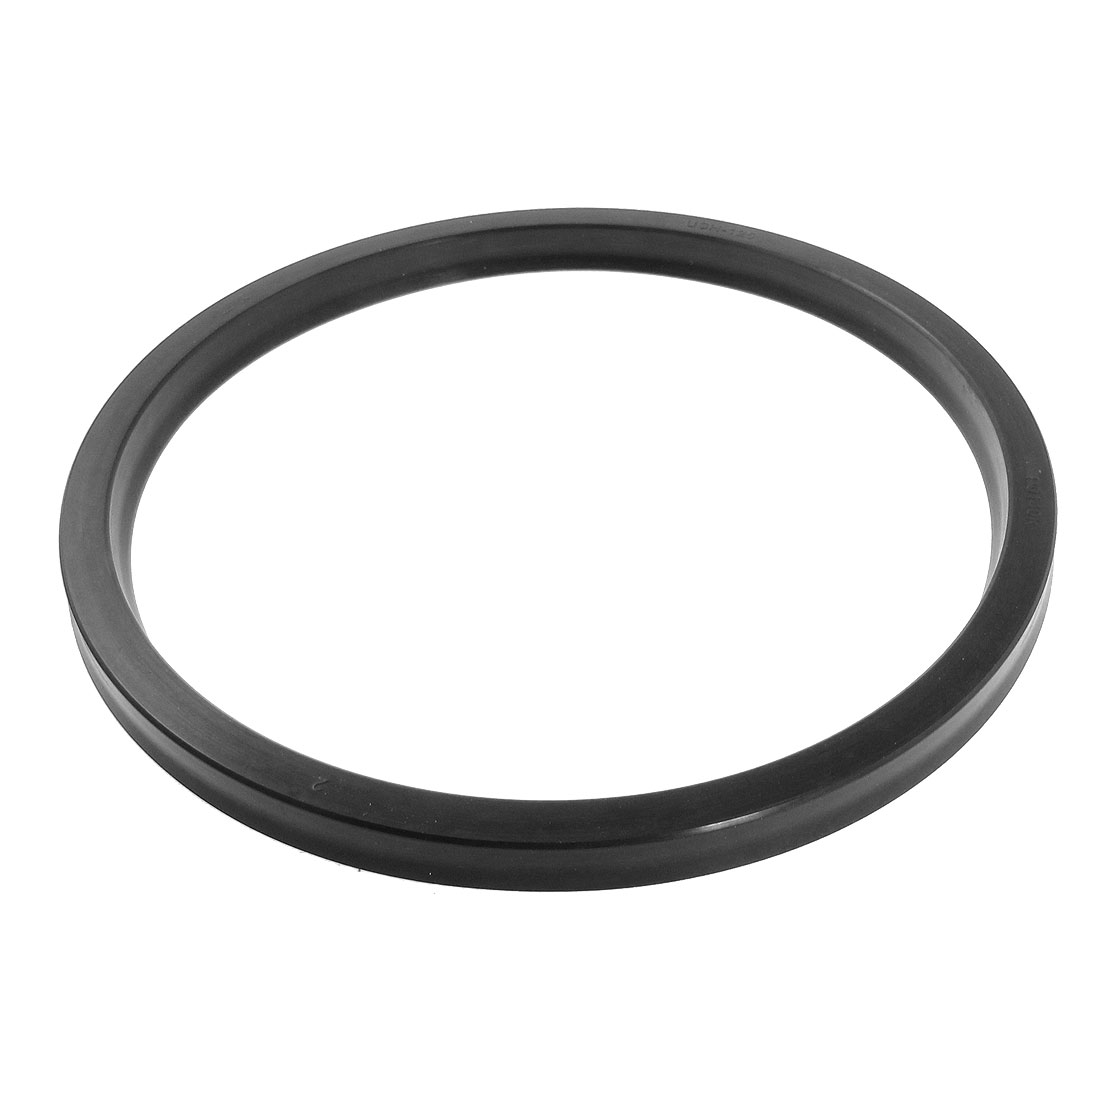 USH 120mm x 135mm x 9mm Hydraulic Rubber Oil Seal Ring Gasket Black